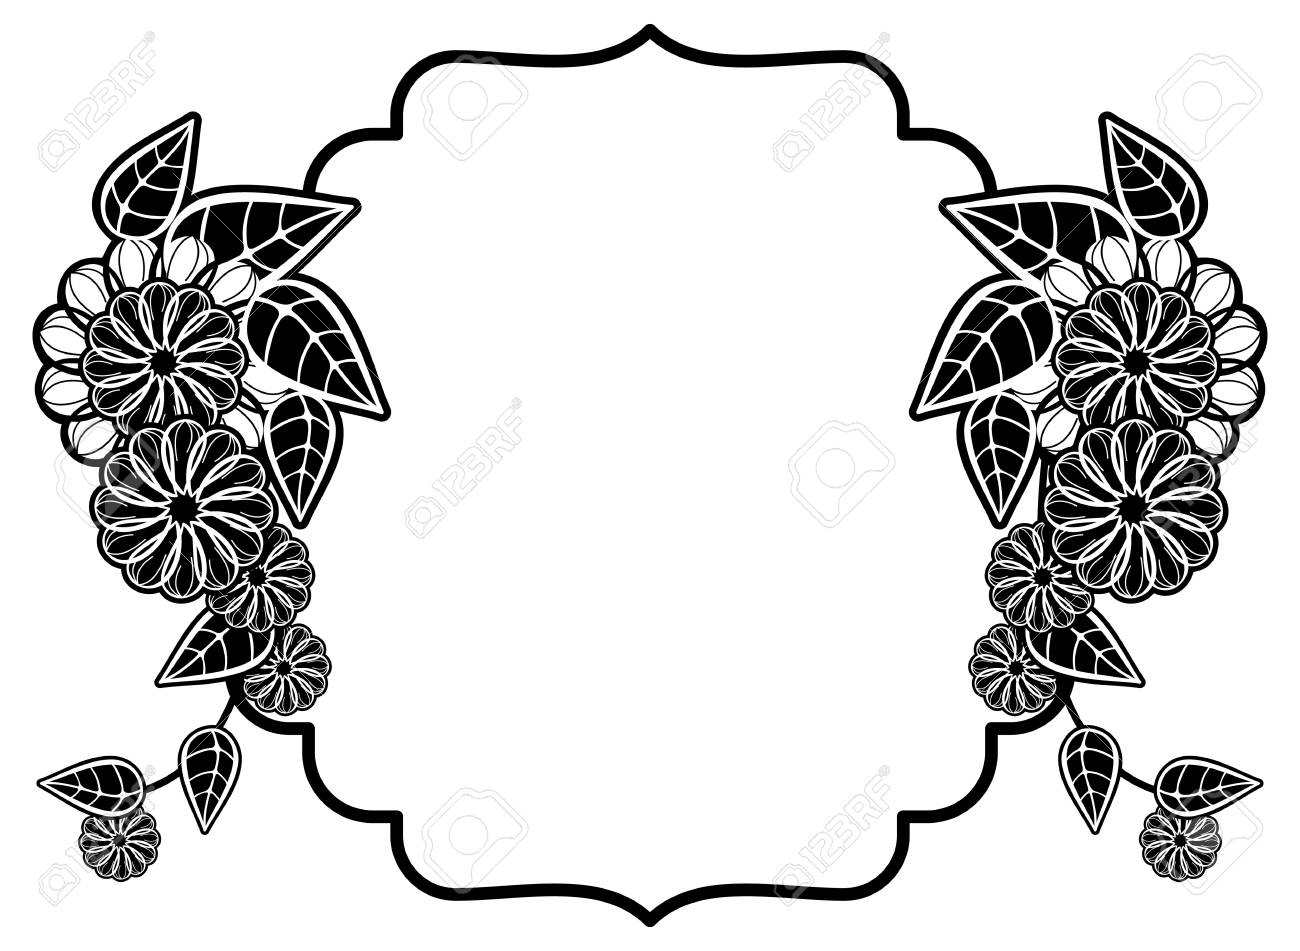 Black and white frame with decorative flowers copy space vector clip art stock